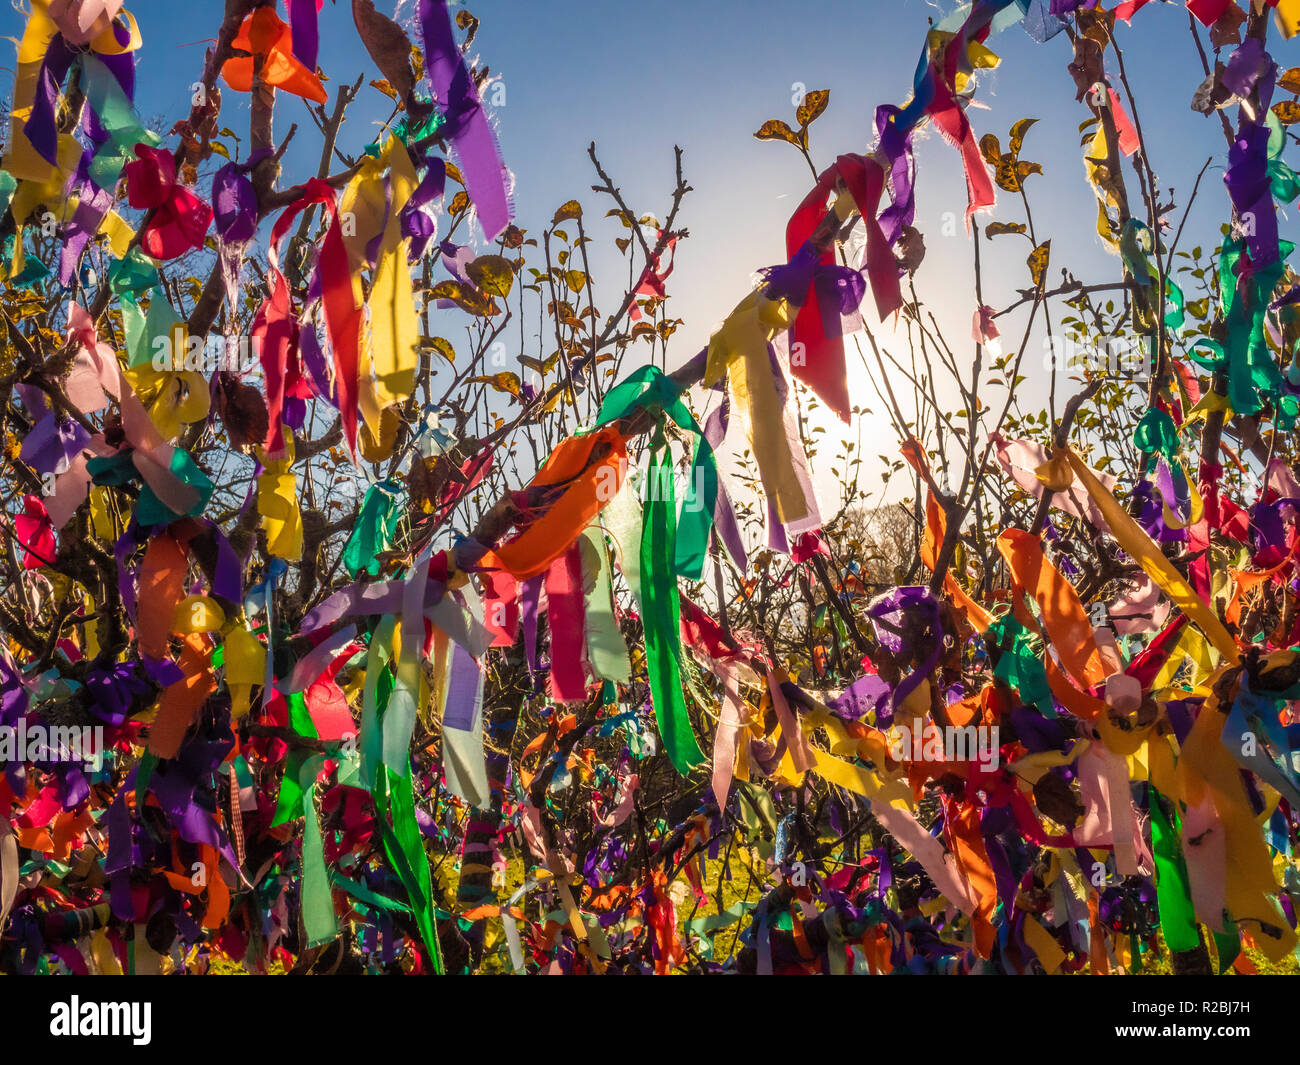 Brightly coloured ribbons tied onto branches of tree outdoors - Stock Image